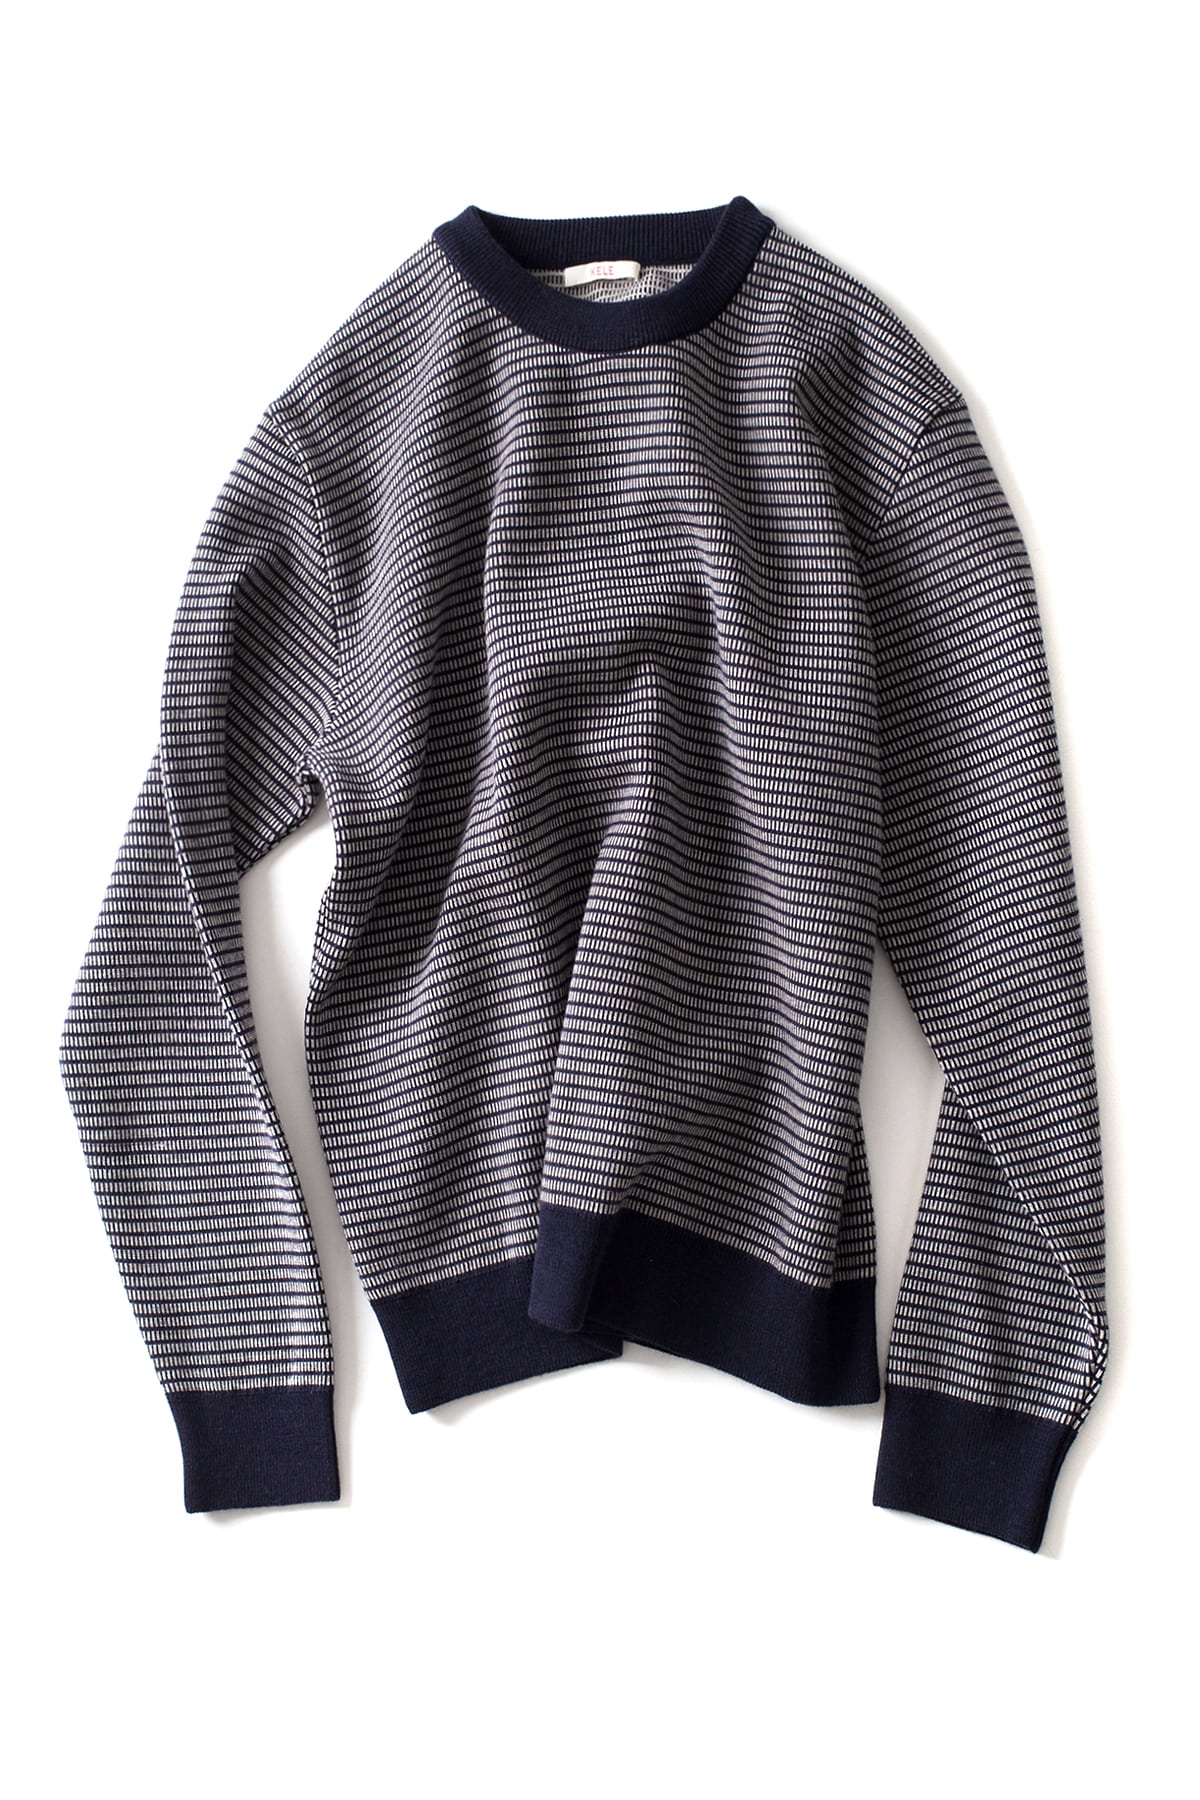 KELE Clothing : MOG (Navy / Beige)